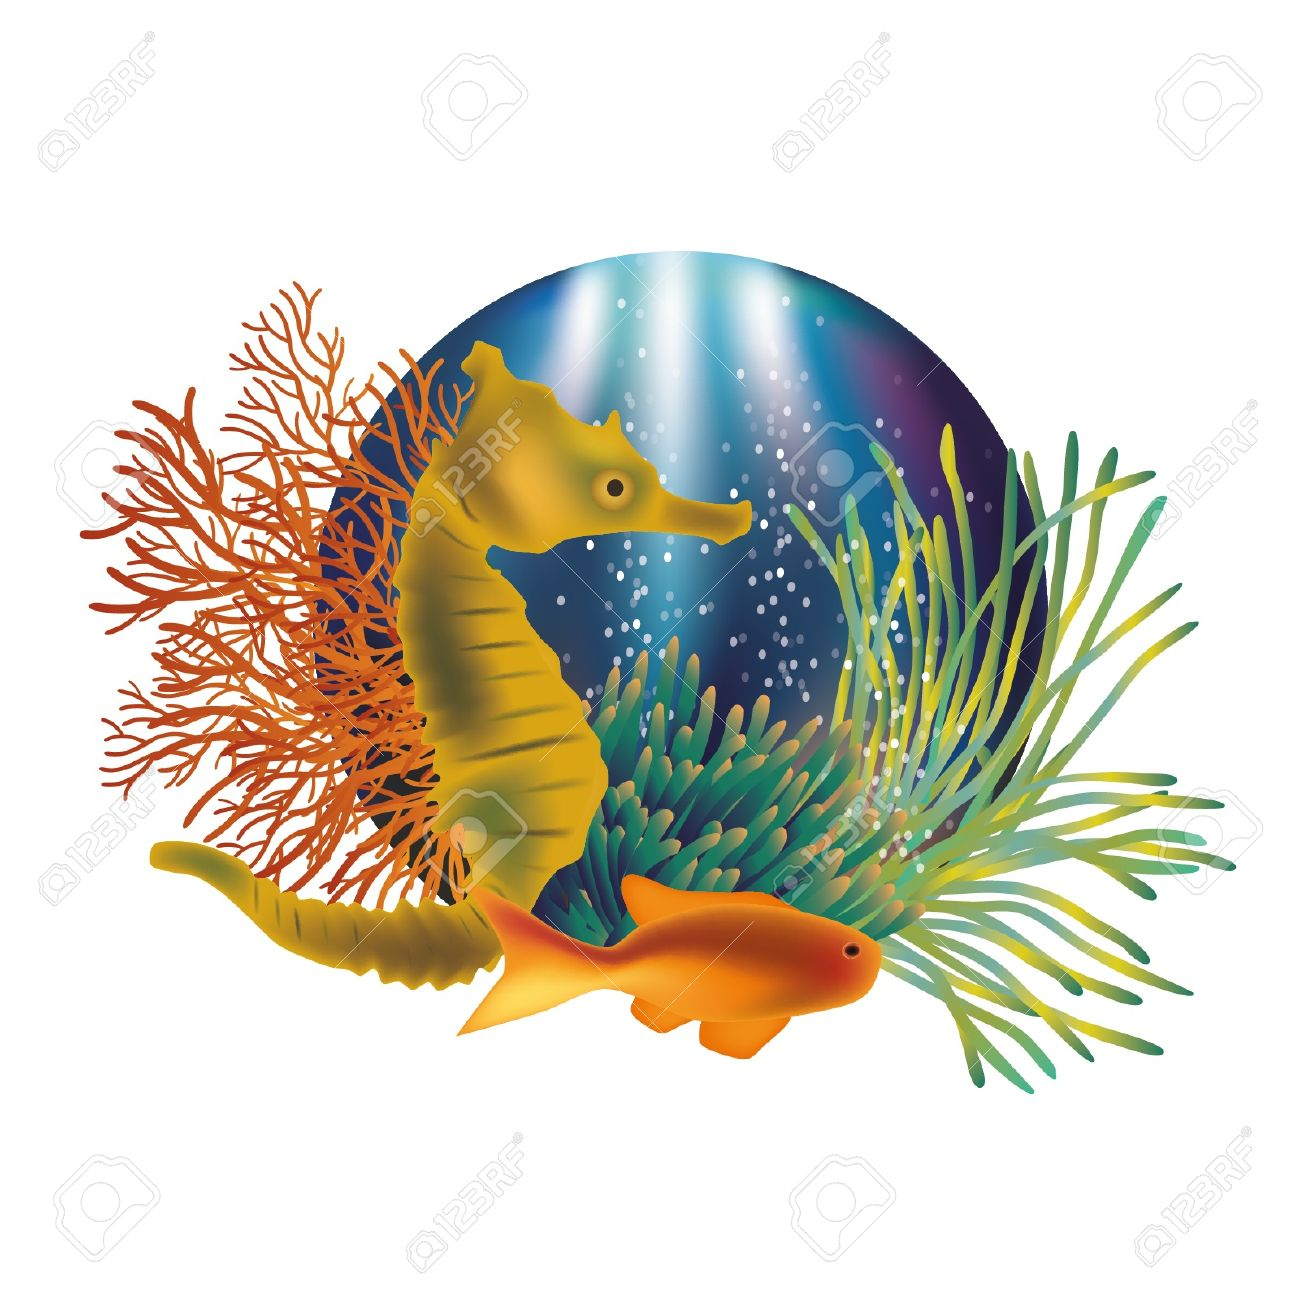 Marine Plant clipart #5, Download drawings